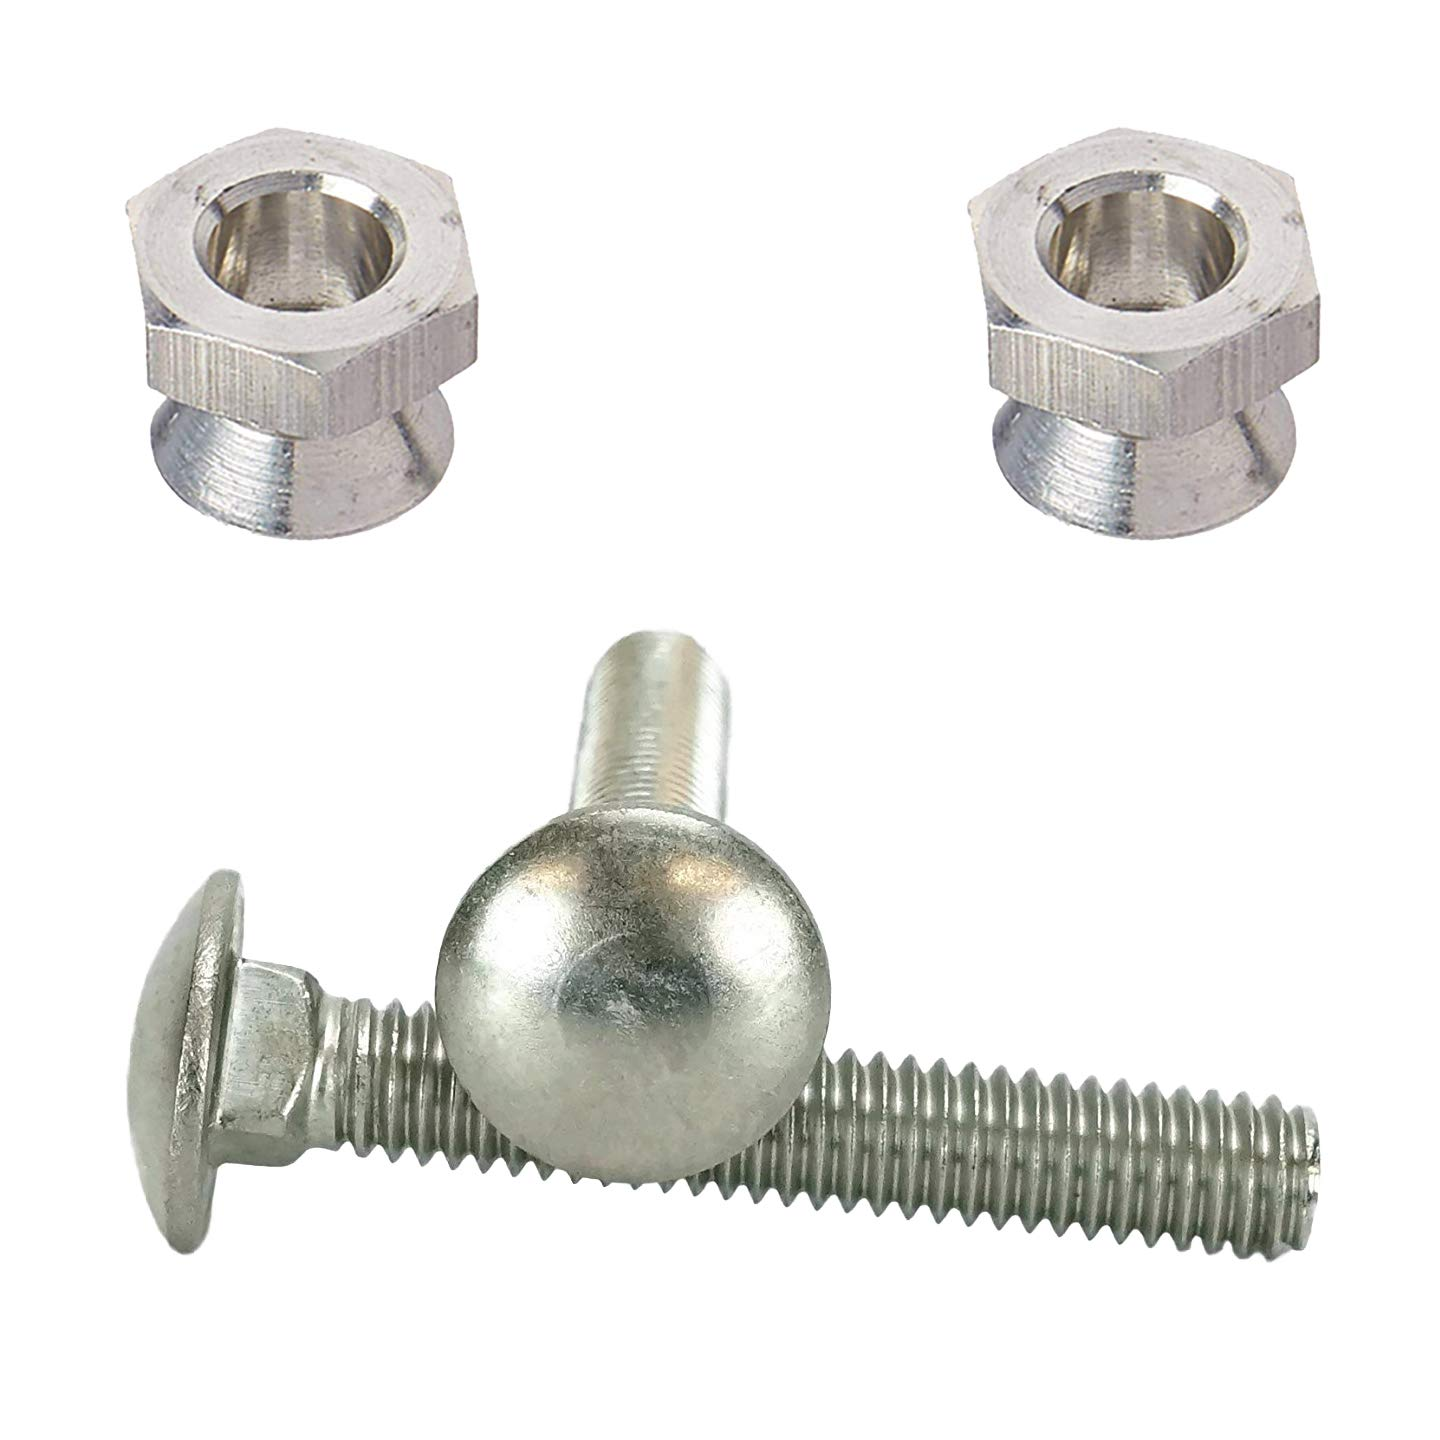 Sign Mounting Hardware Carriage Bolt with Security Nut 5//16-18 X 2 for U Channel Post County Solutions